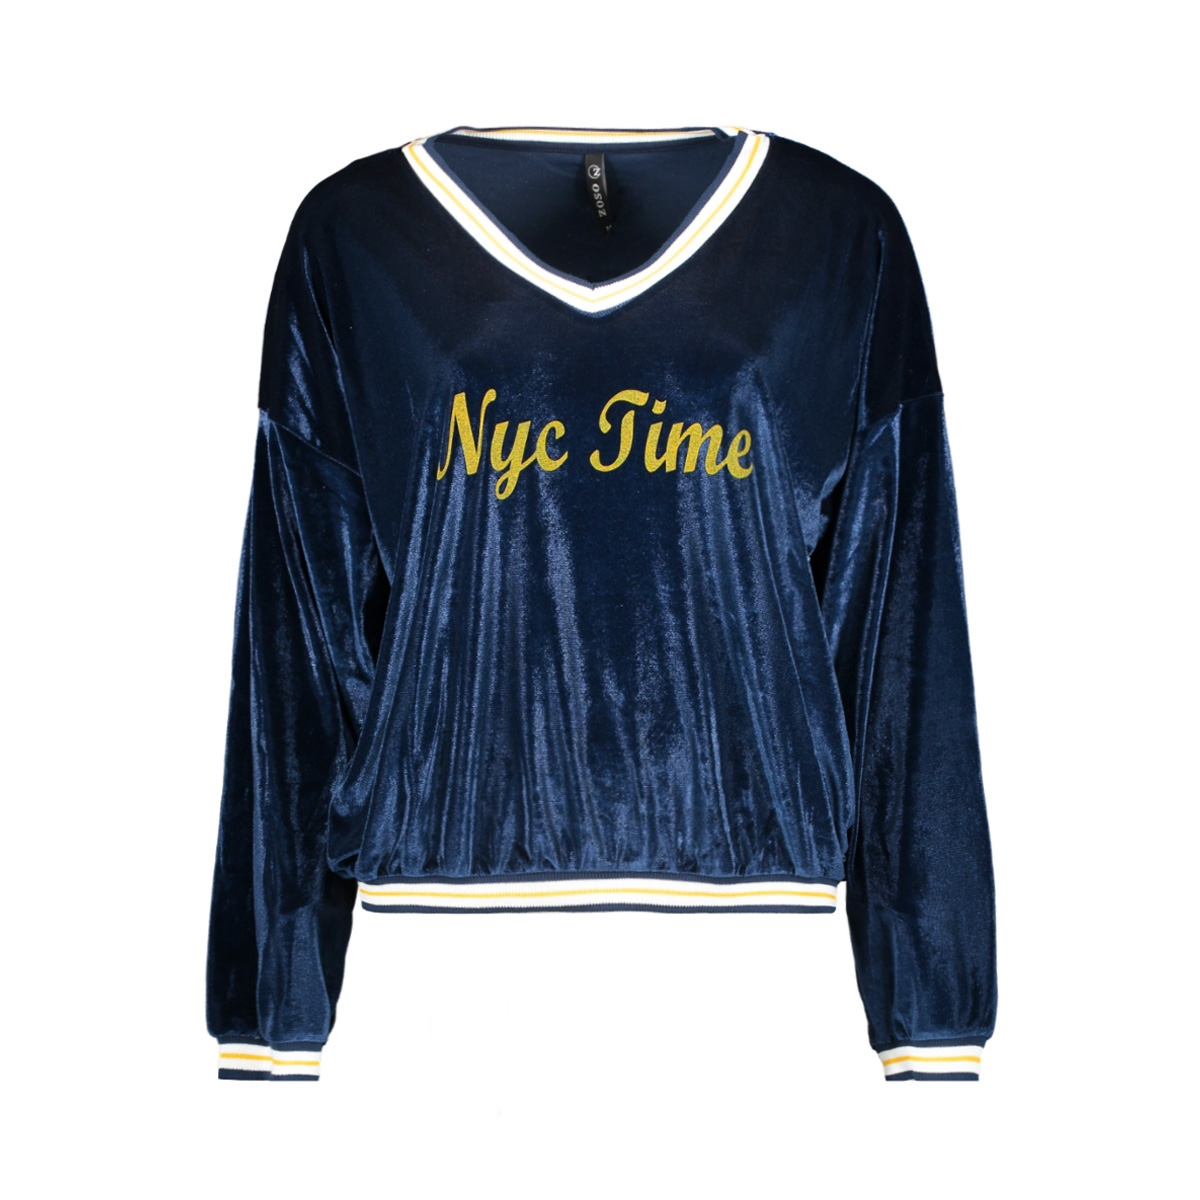 nyc time pullover zoso trui navy/yellow